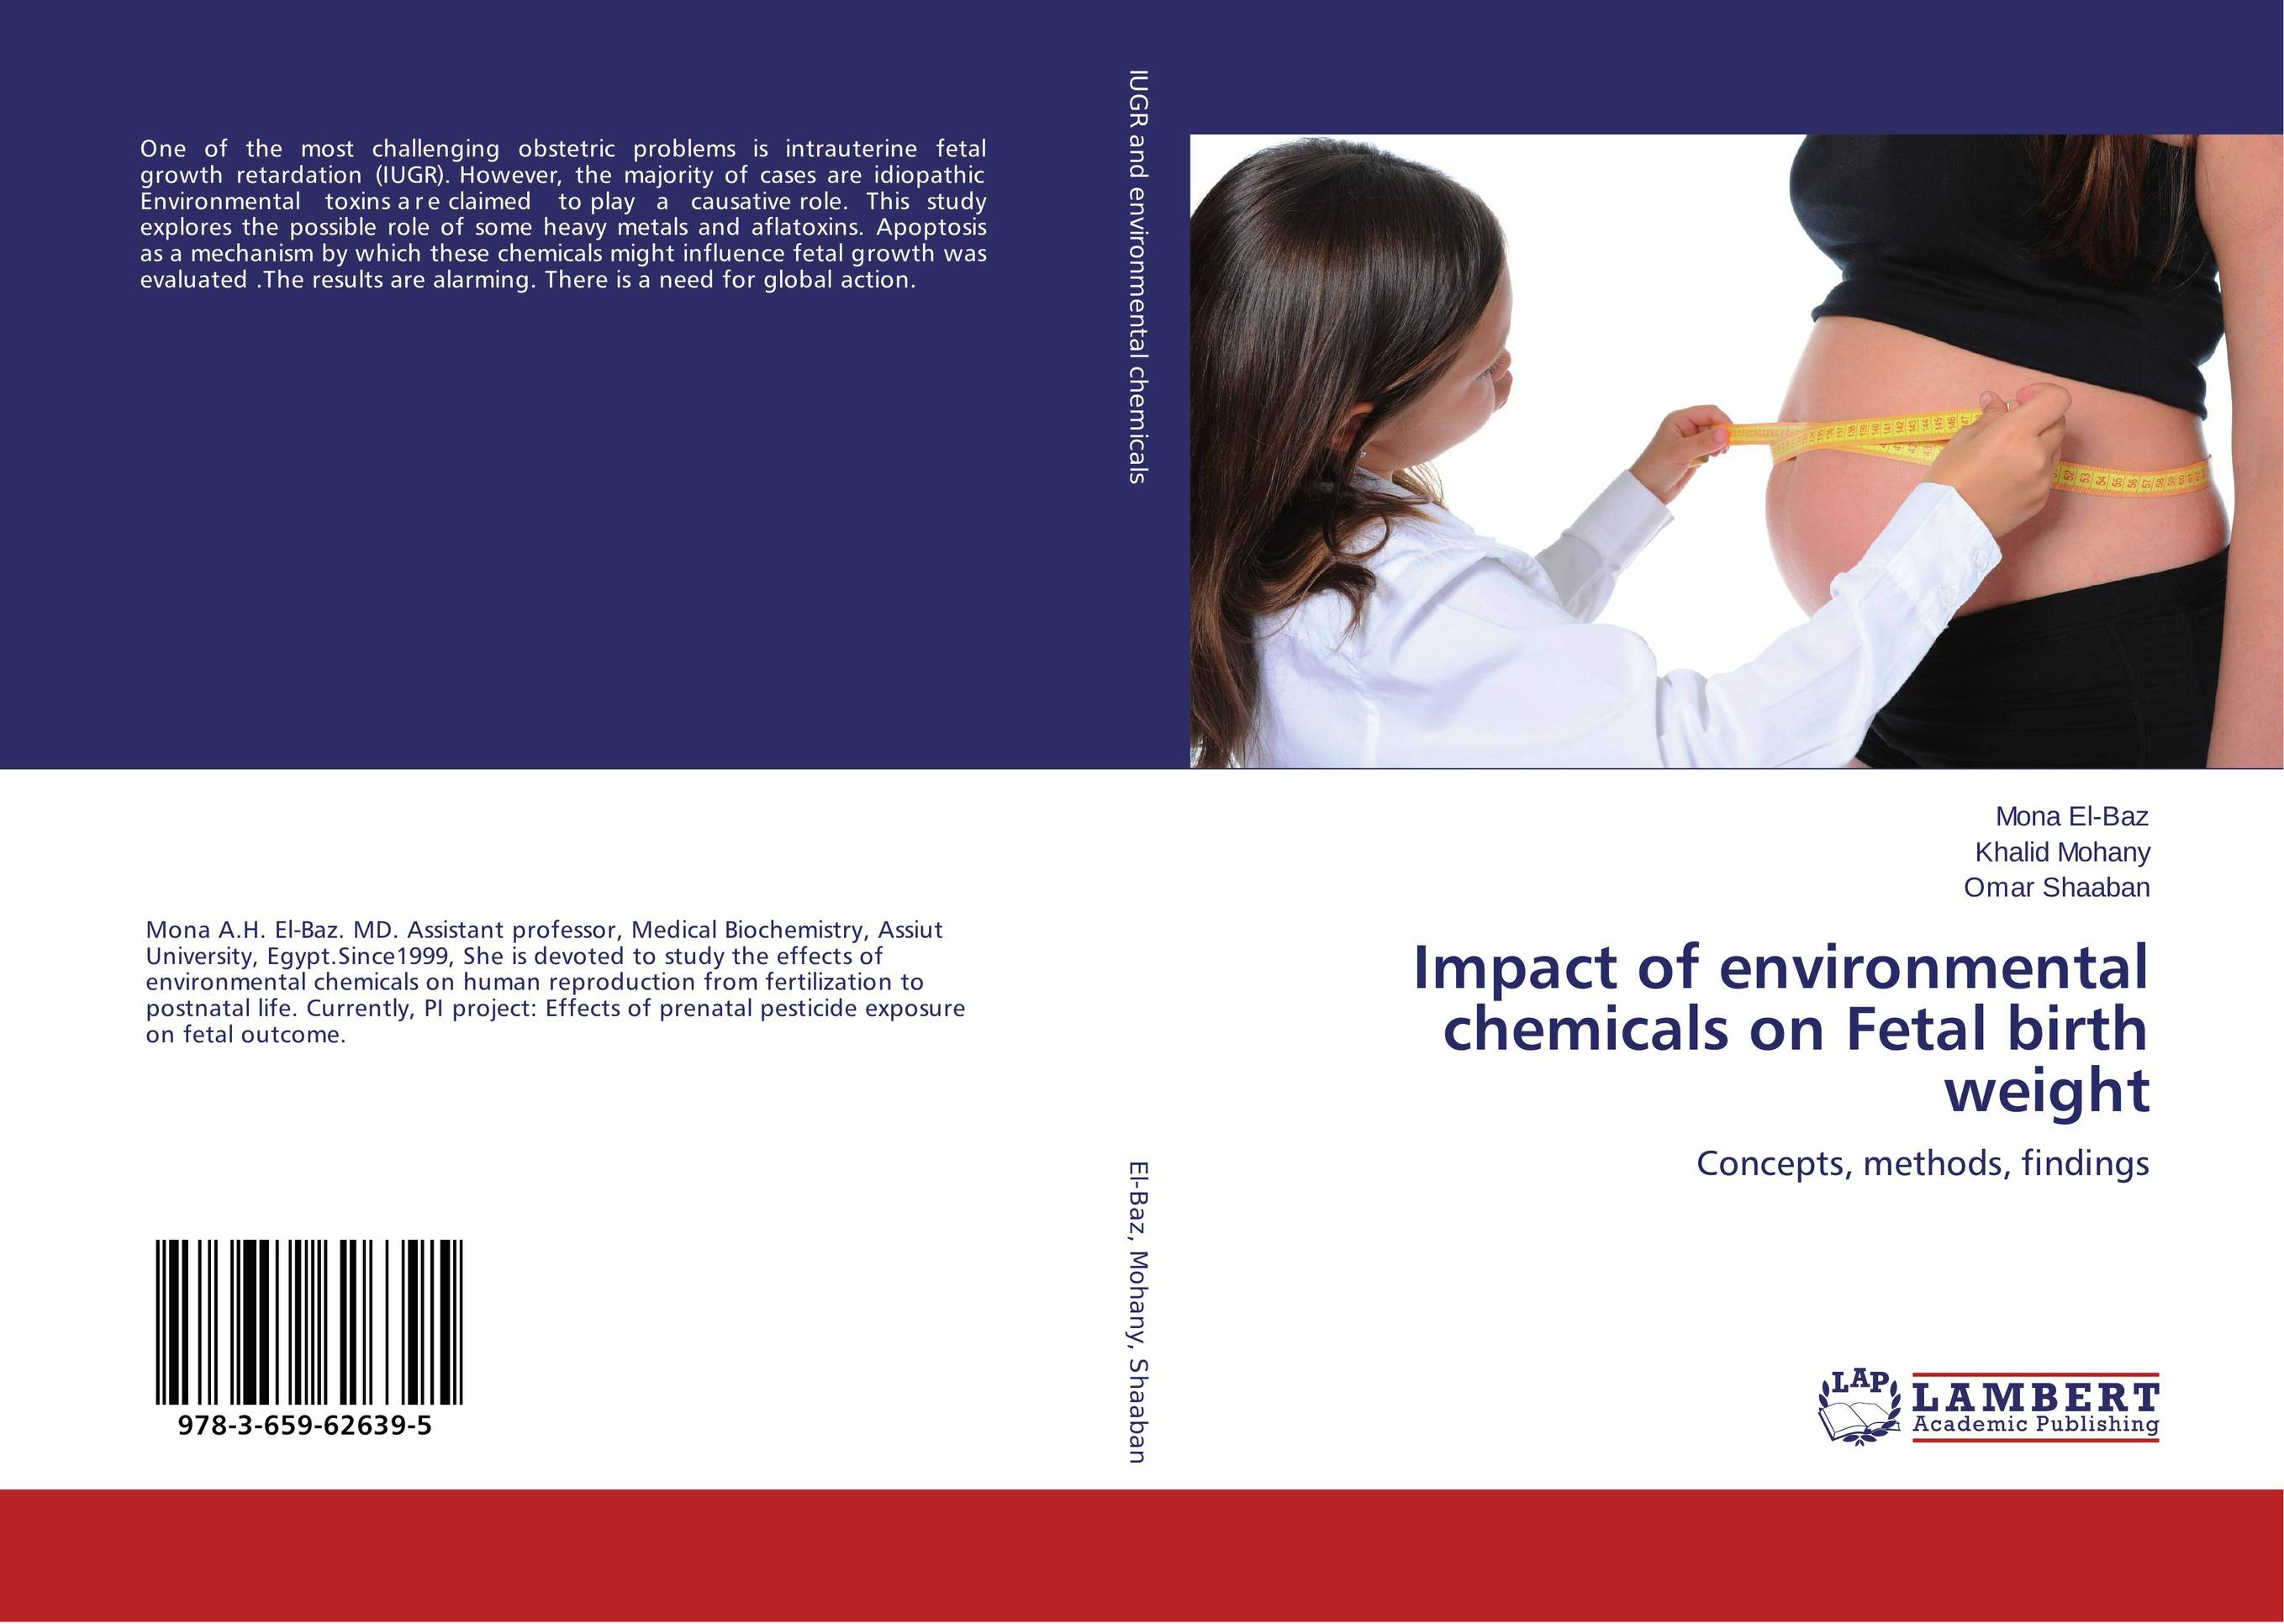 Impact of environmental chemicals on Fetal birth weight intrauterine fetal death